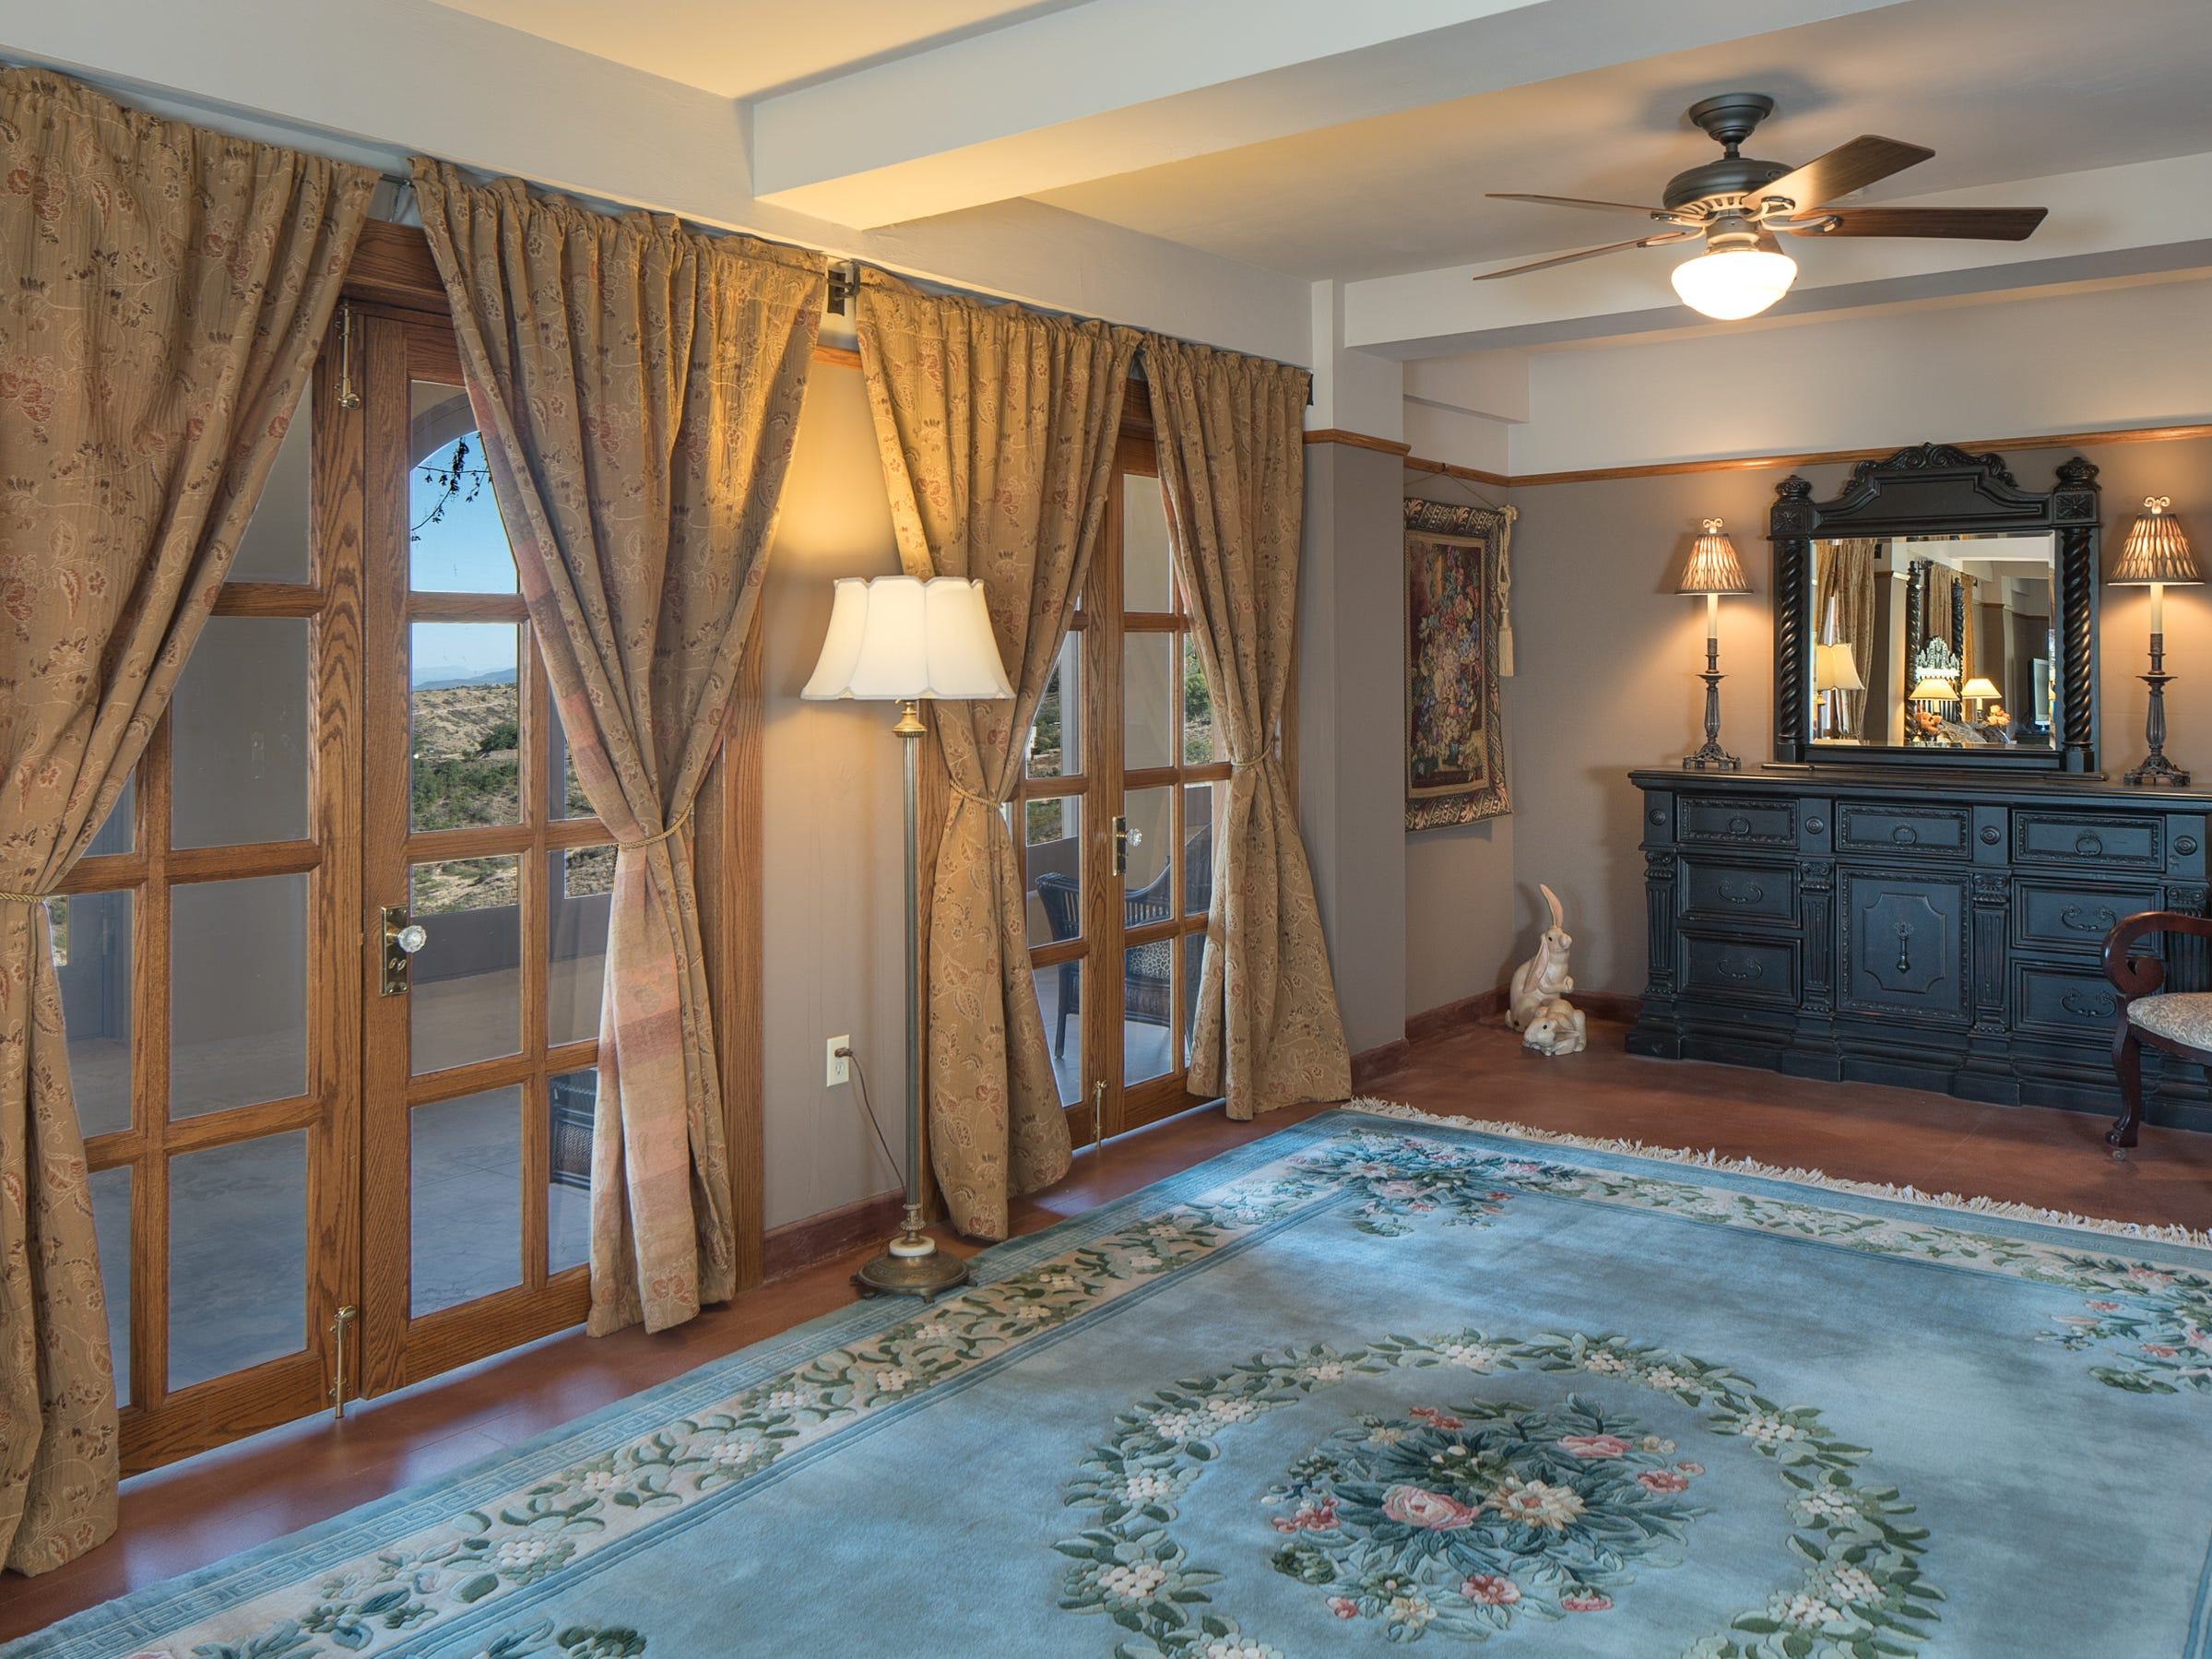 French doors in the master bedroom are seen in the 100-year-old former Little Daisy Hotel in Jerome, which was later turned into a single-family home and is now on the market.